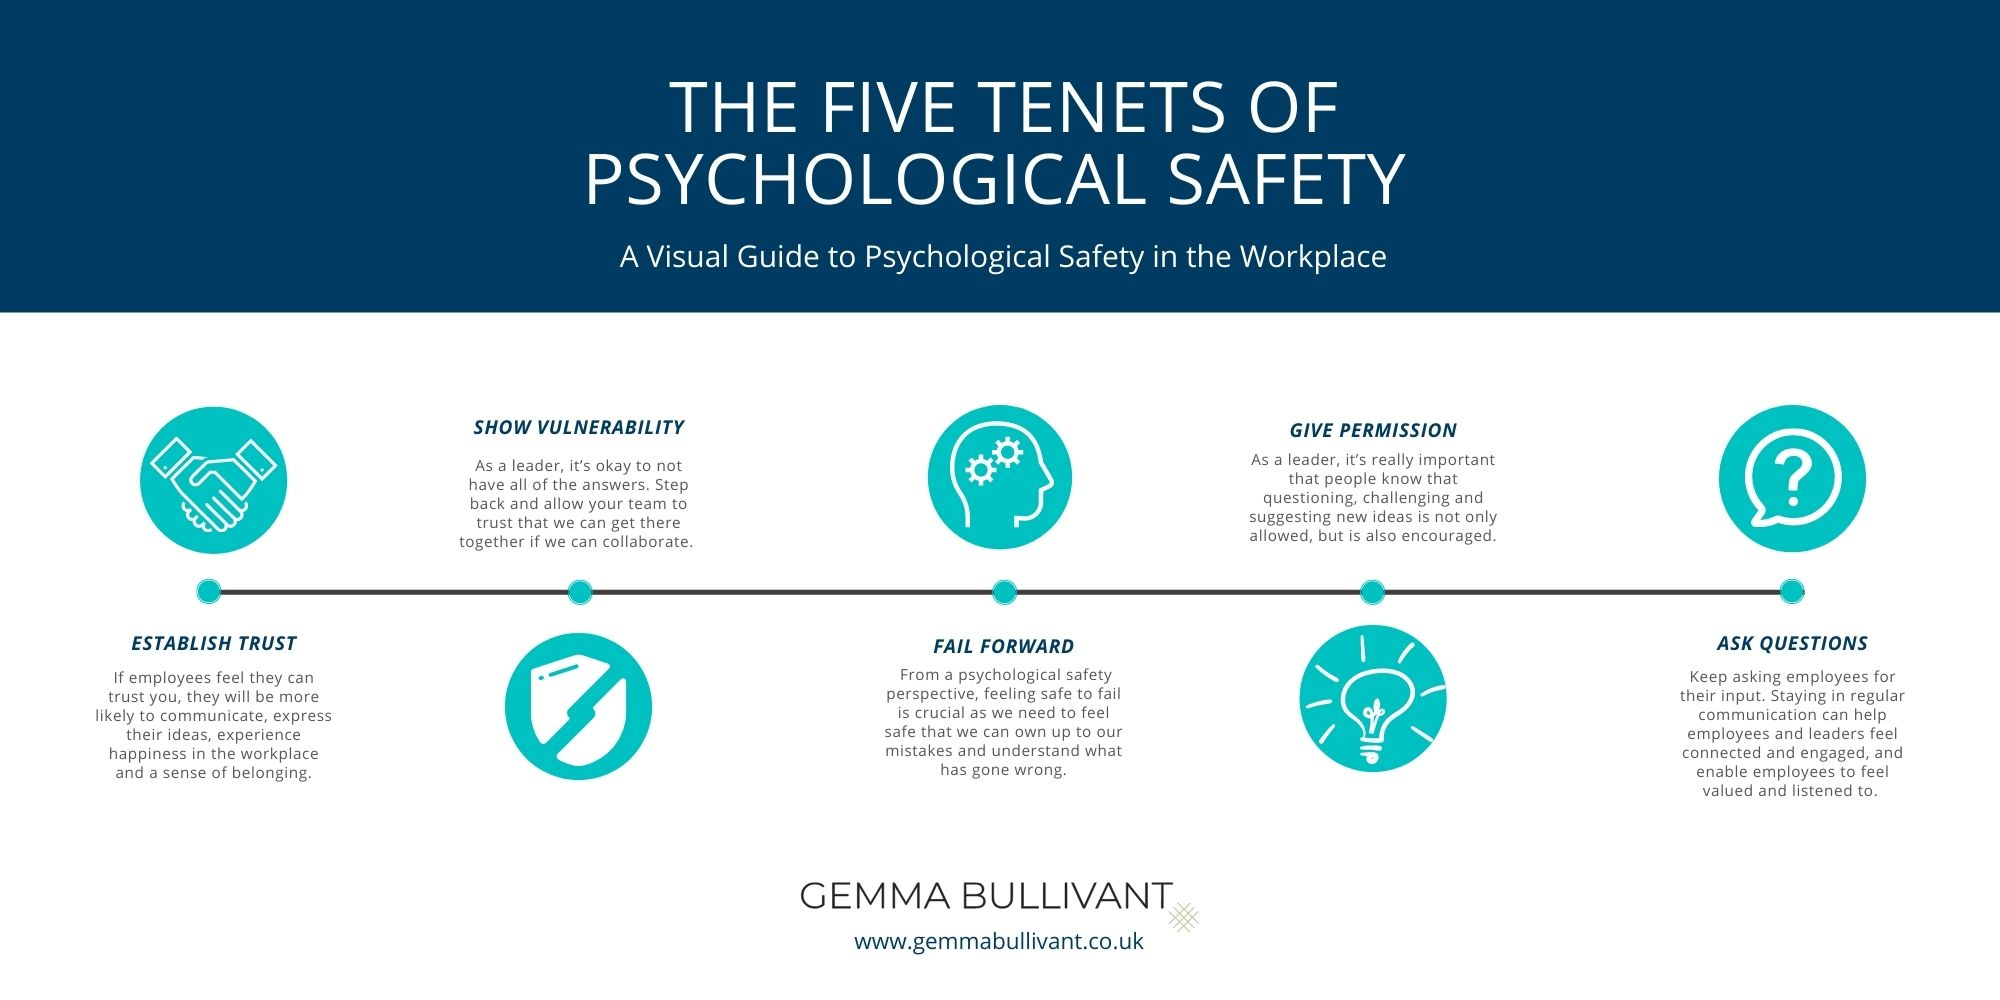 The five tenets of psychological safety